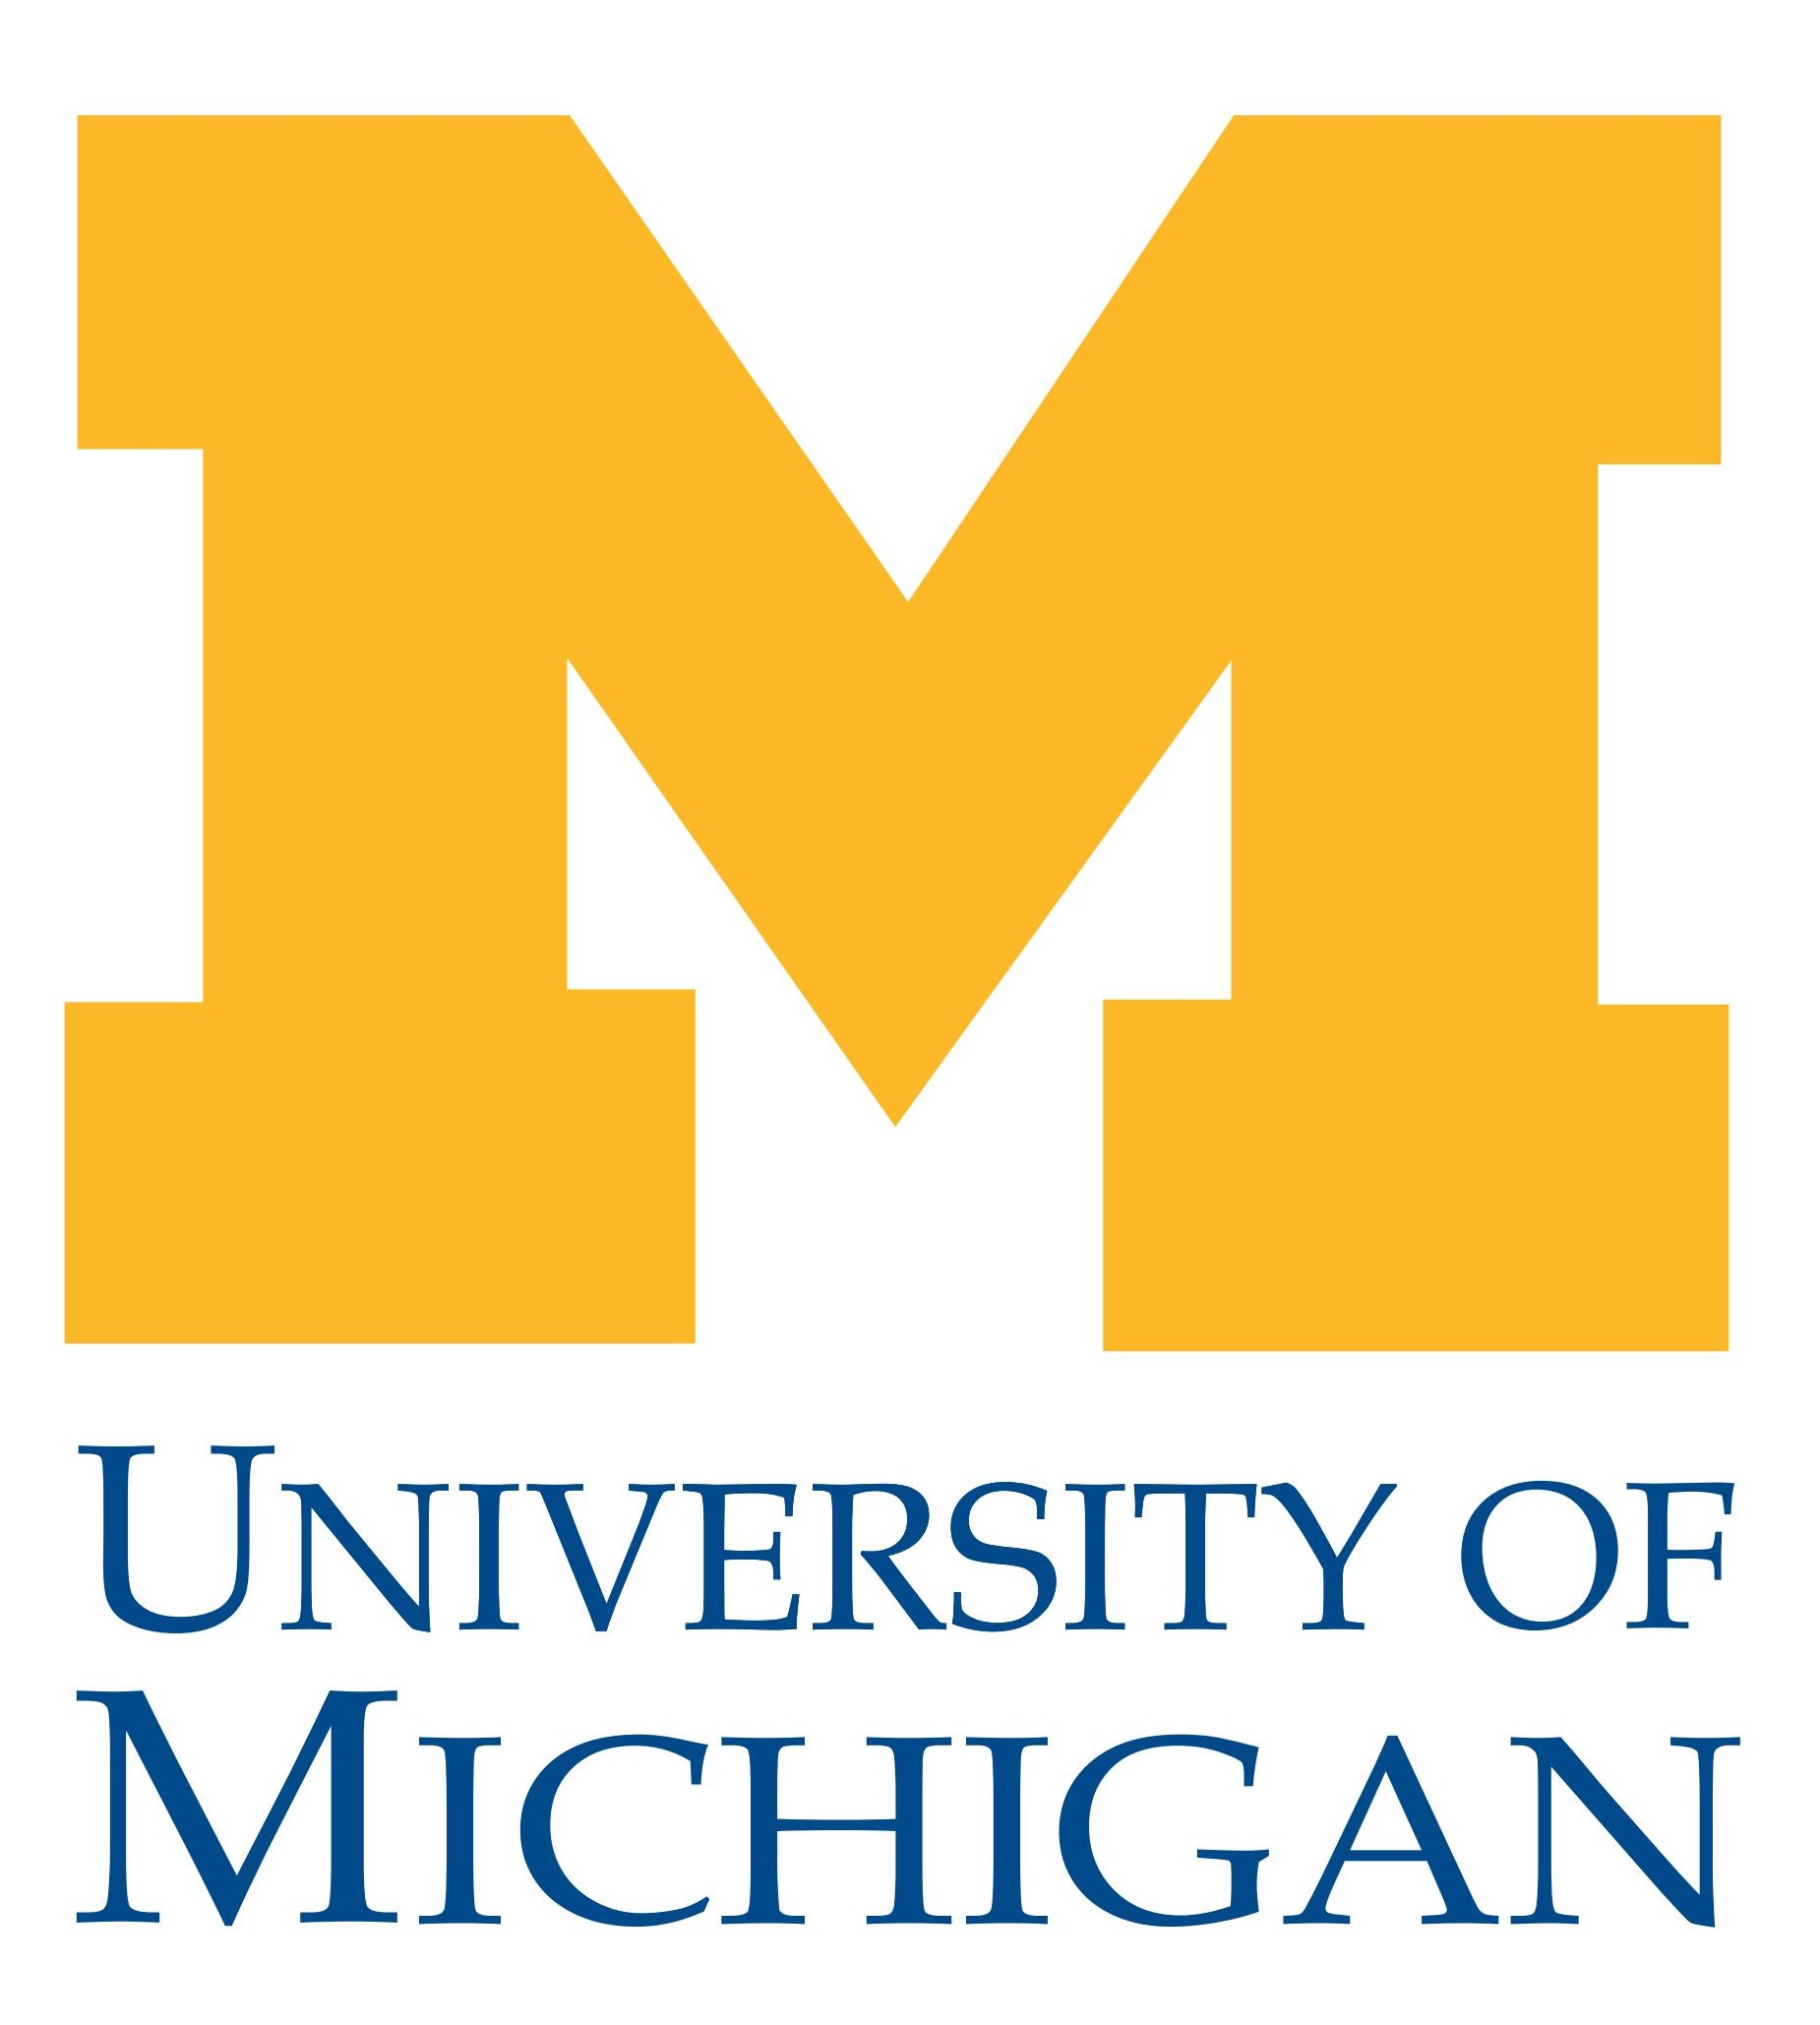 university-of-michigan-college-diabetes-network-tgnt0p-clipart.jpg